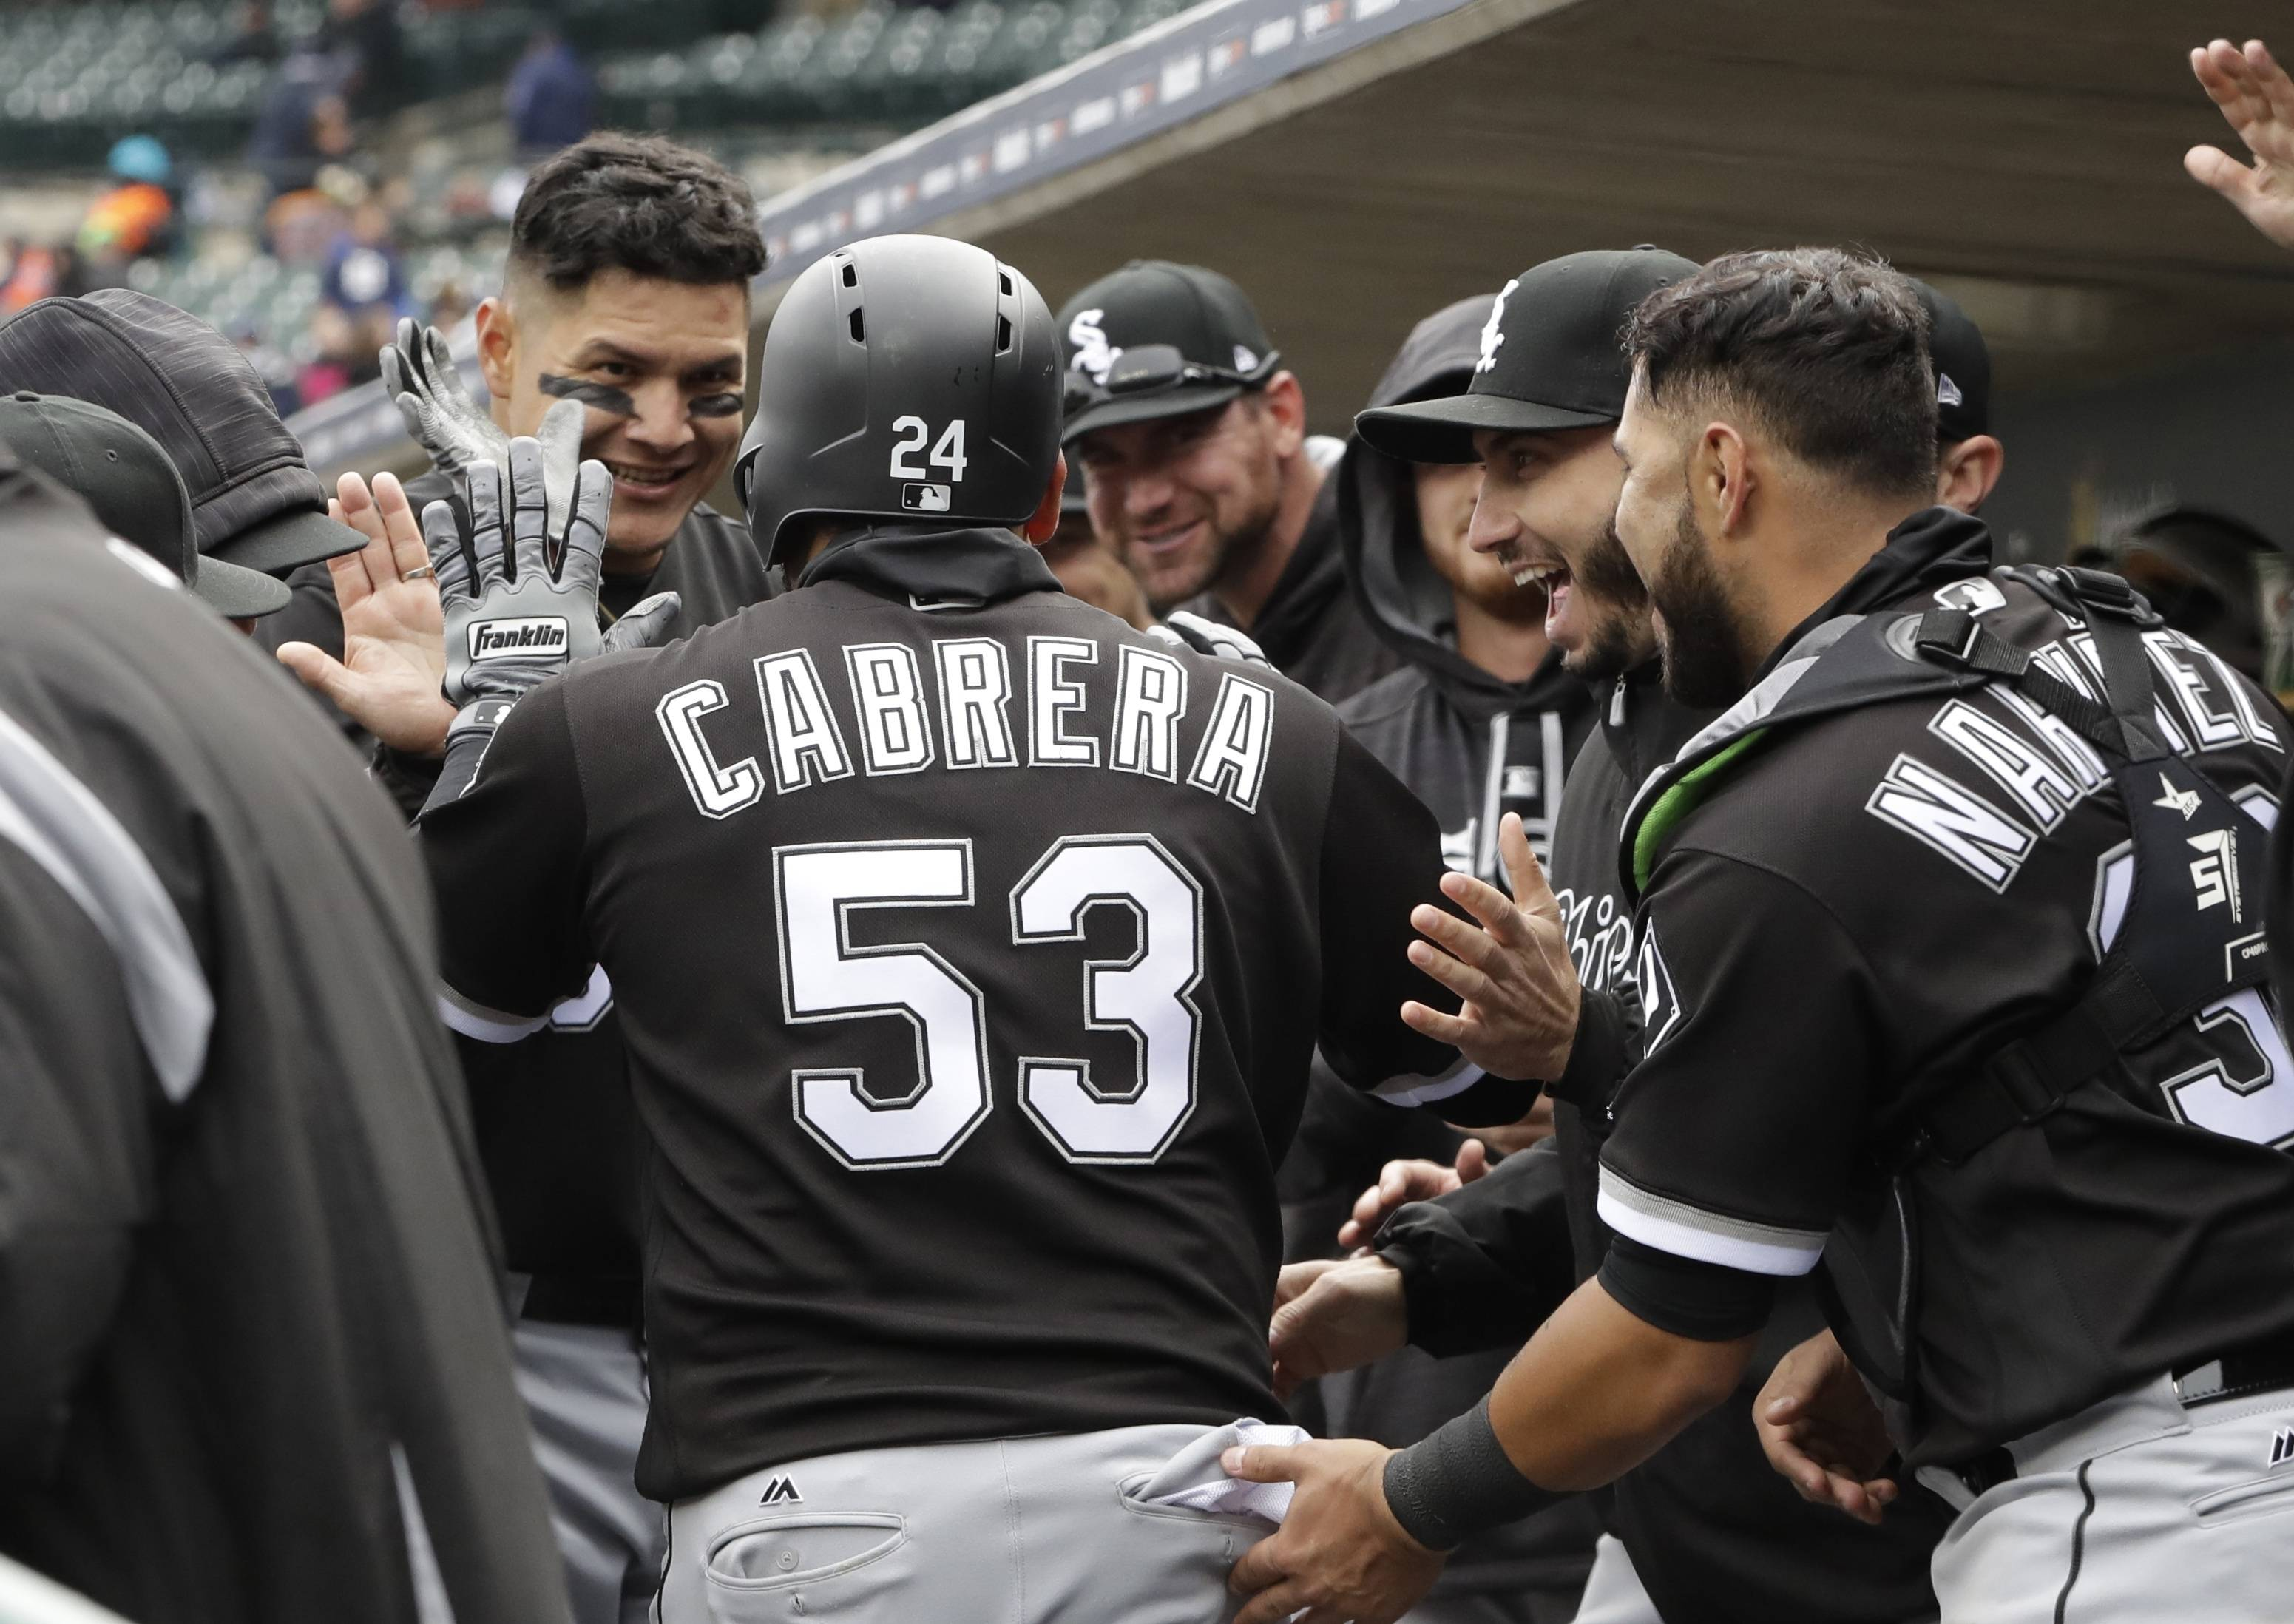 Chicago White Sox's Melky Cabrera is congratulated after his home run during the 10th inning of a baseball game against the Detroit Tigers, Saturday, April 29, 2017, in Detroit. (AP Photo/Carlos Osorio)